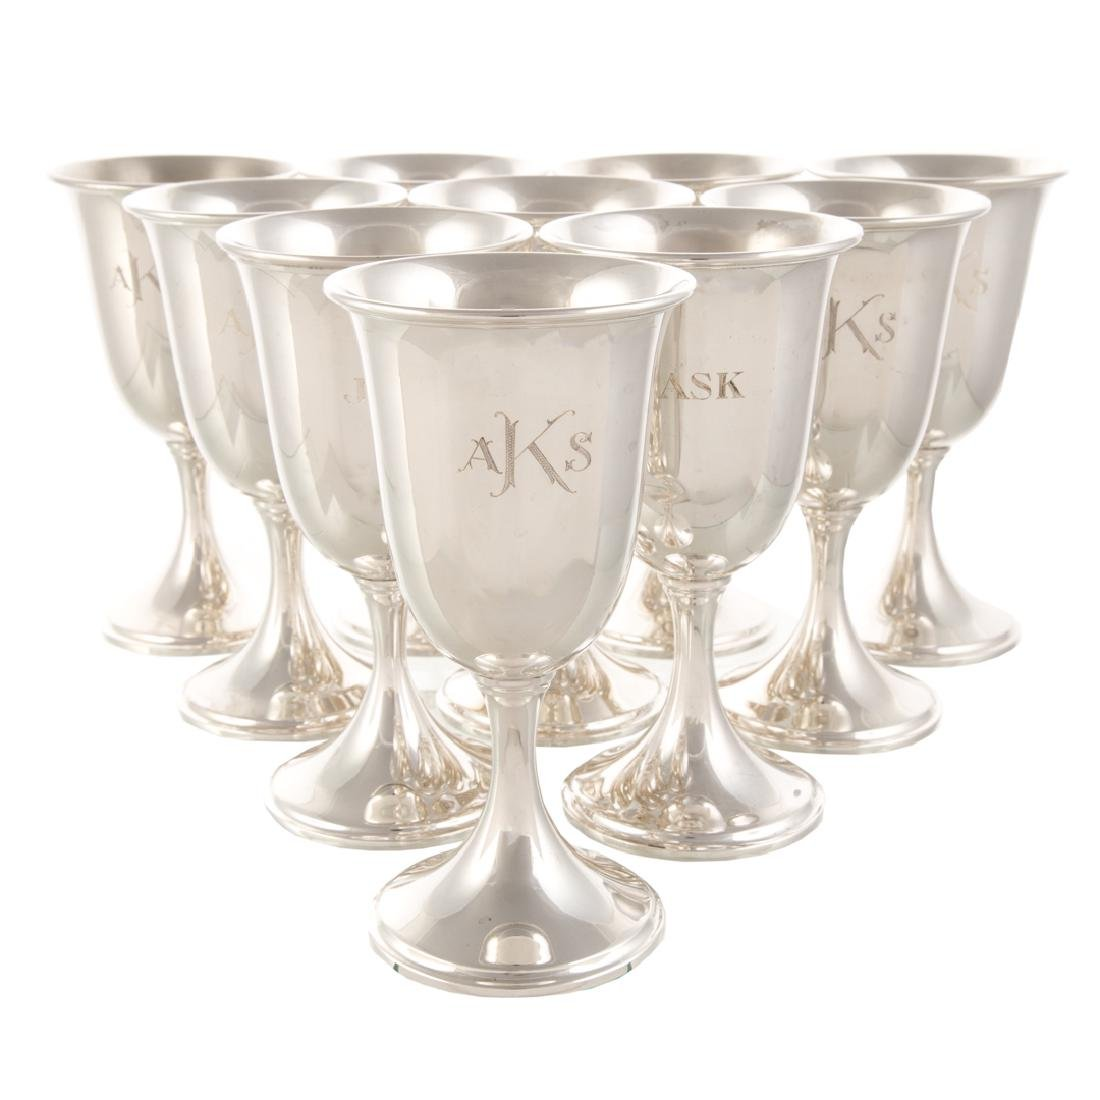 Set of 10 Kirk sterling silver goblets